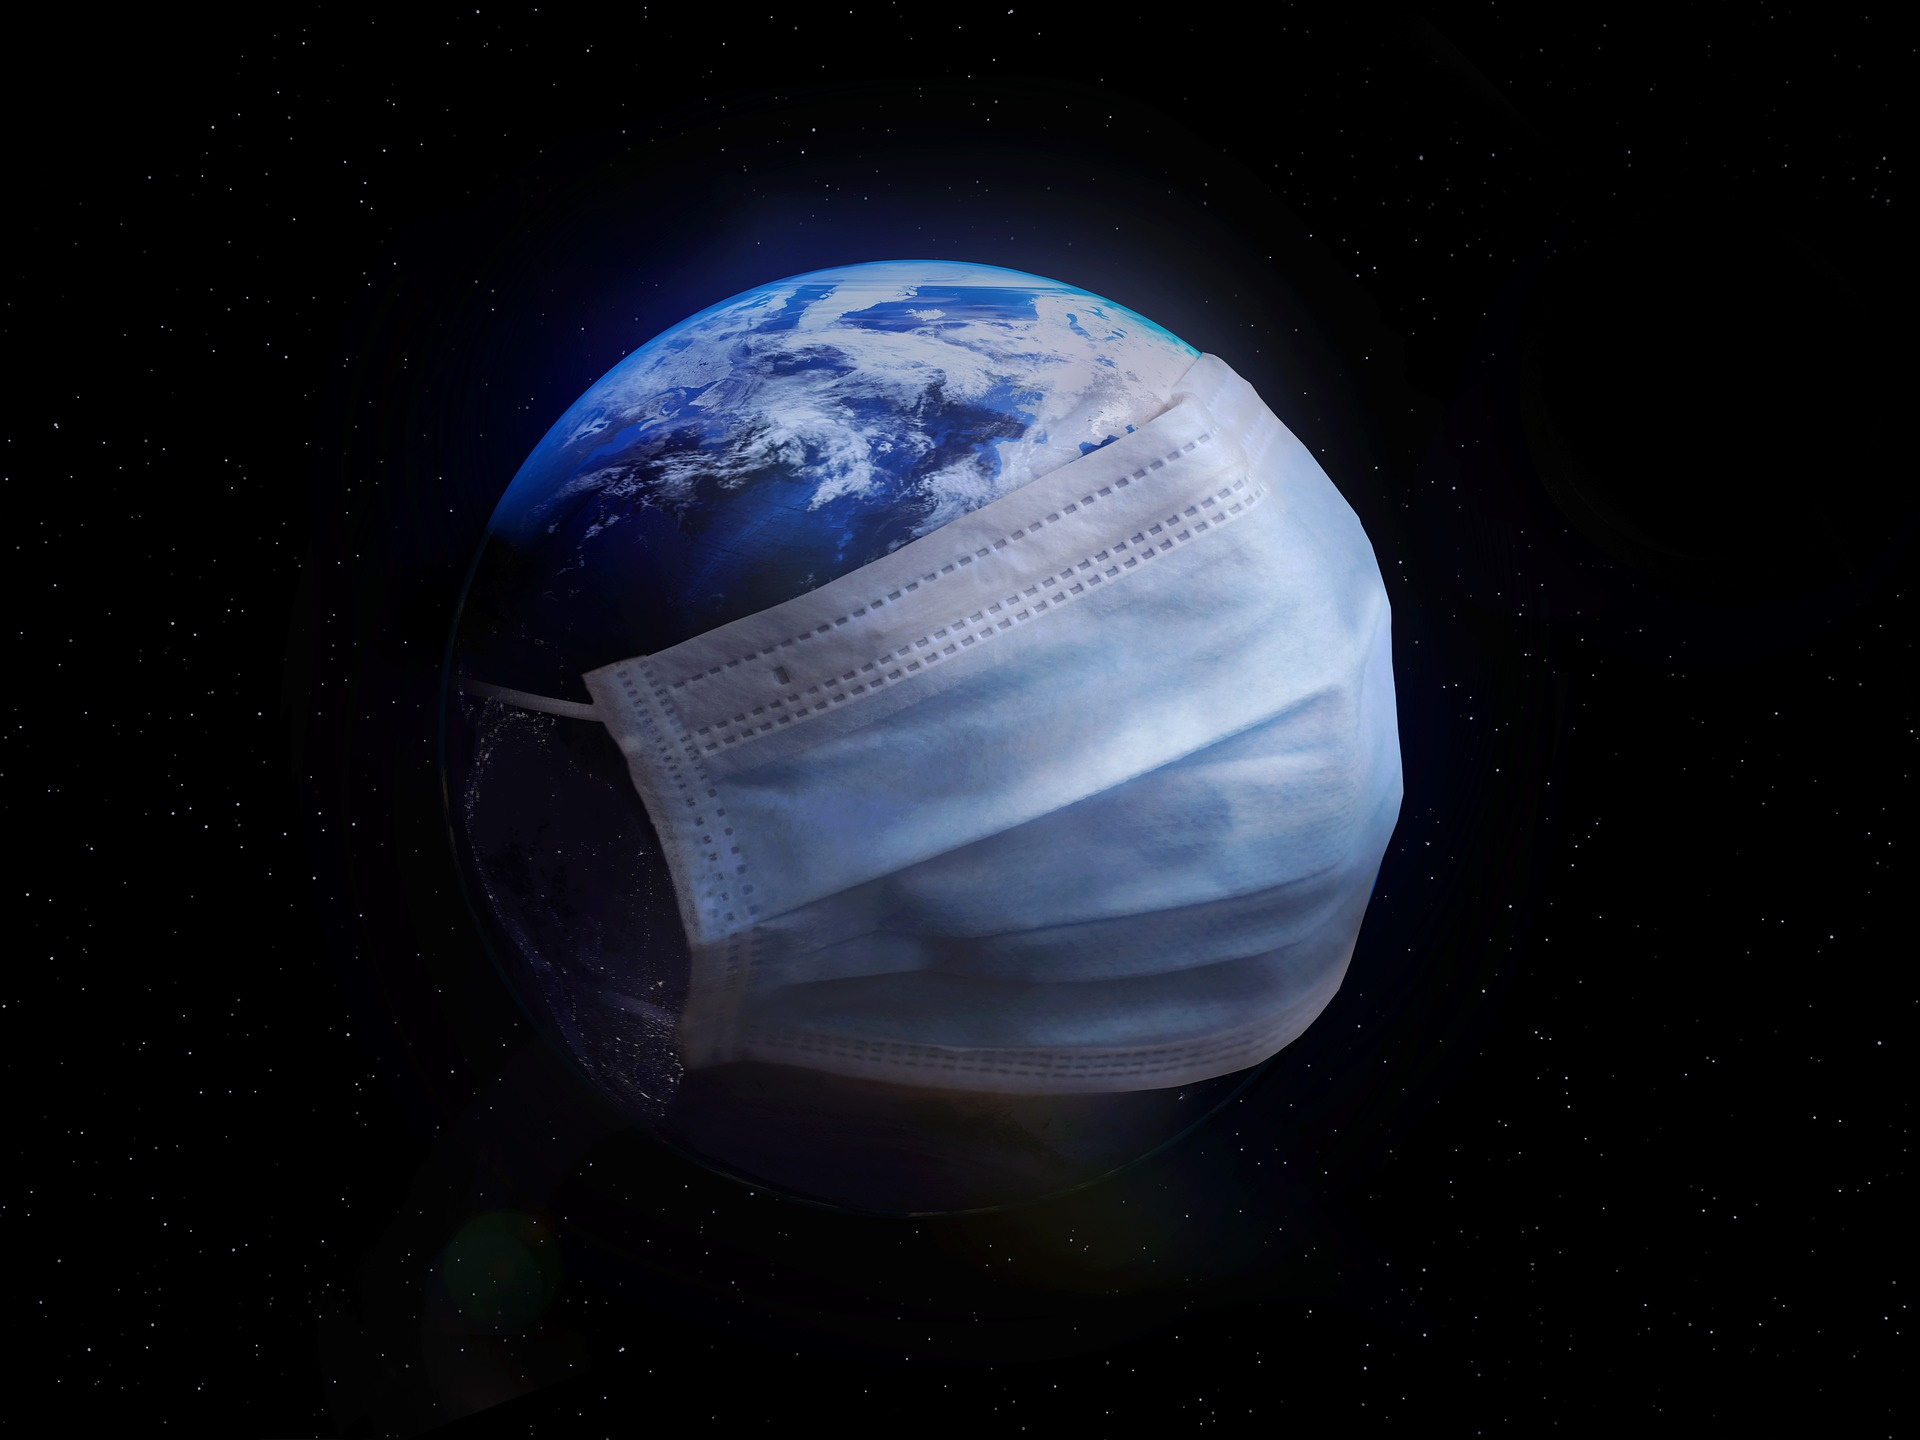 Planet Earch wearing a surgical mask